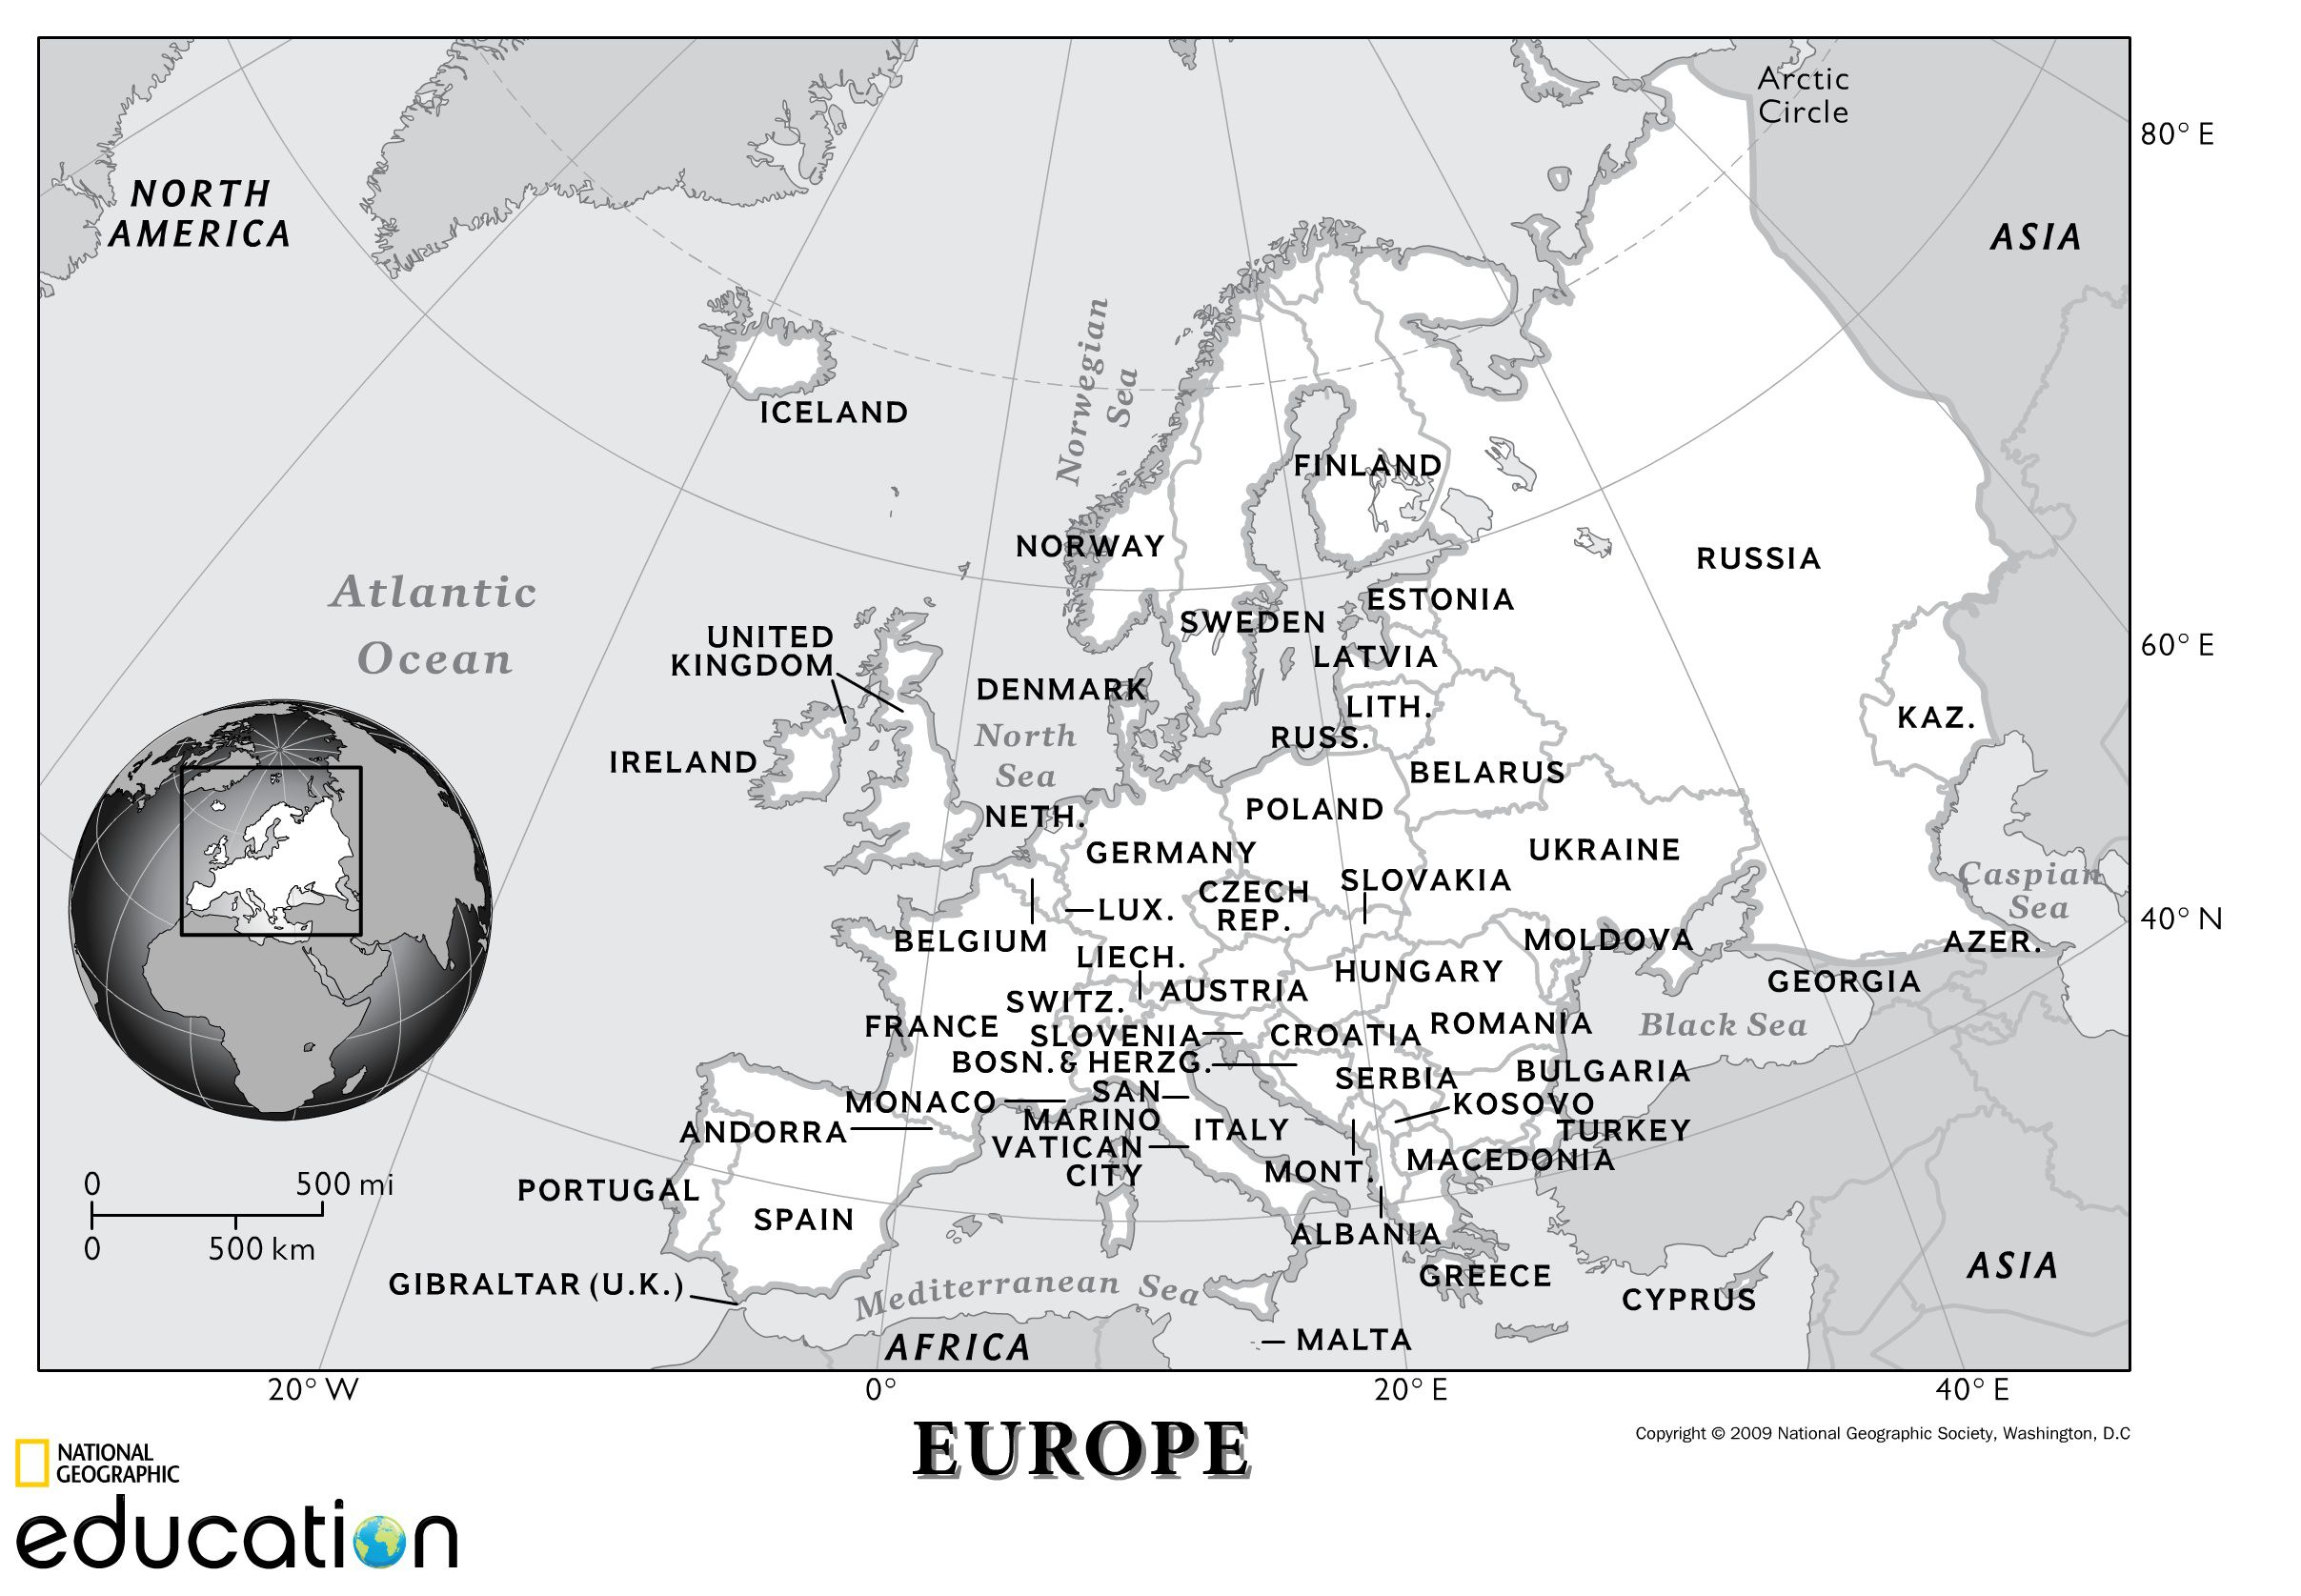 Europe: Human Geography | National Geographic Society